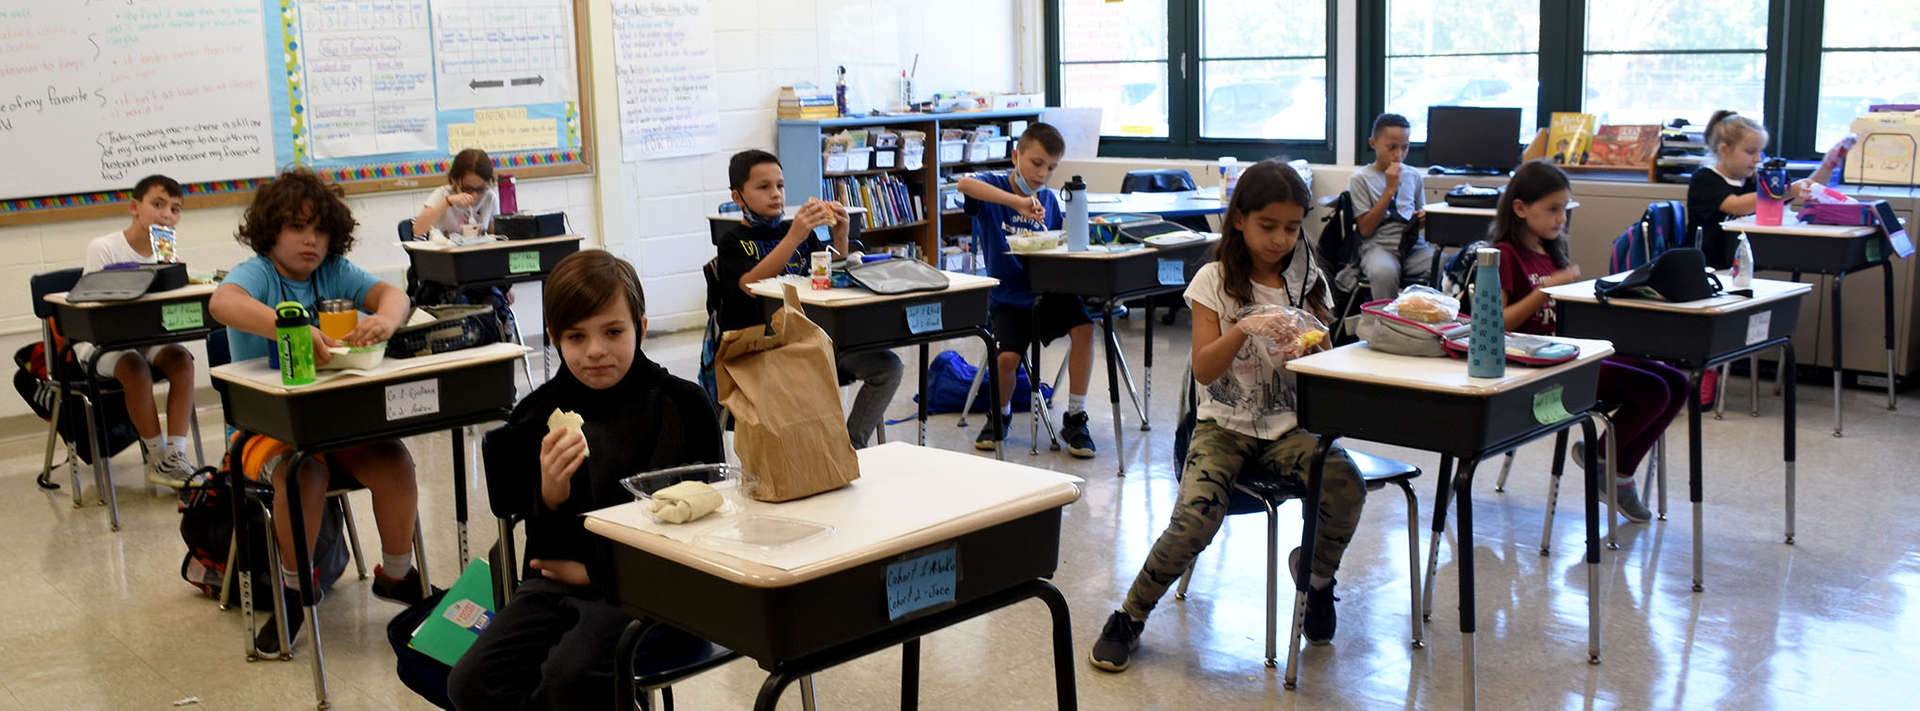 students sit at desks eating their lunch